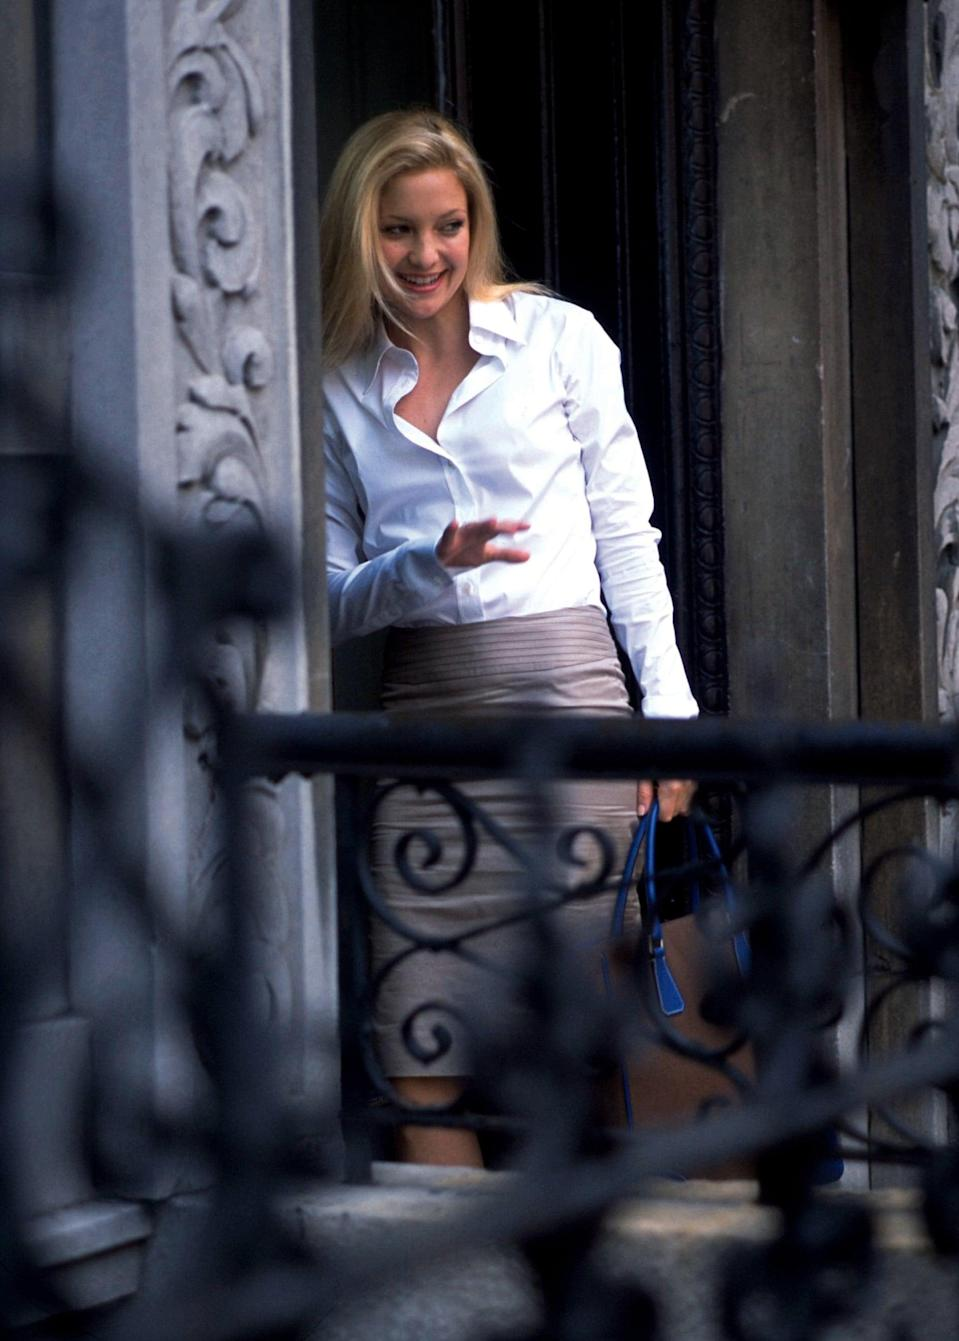 <p>How chic is Andie's office attire too? I love a crisp white button-down paired with a pencil skirt.</p>